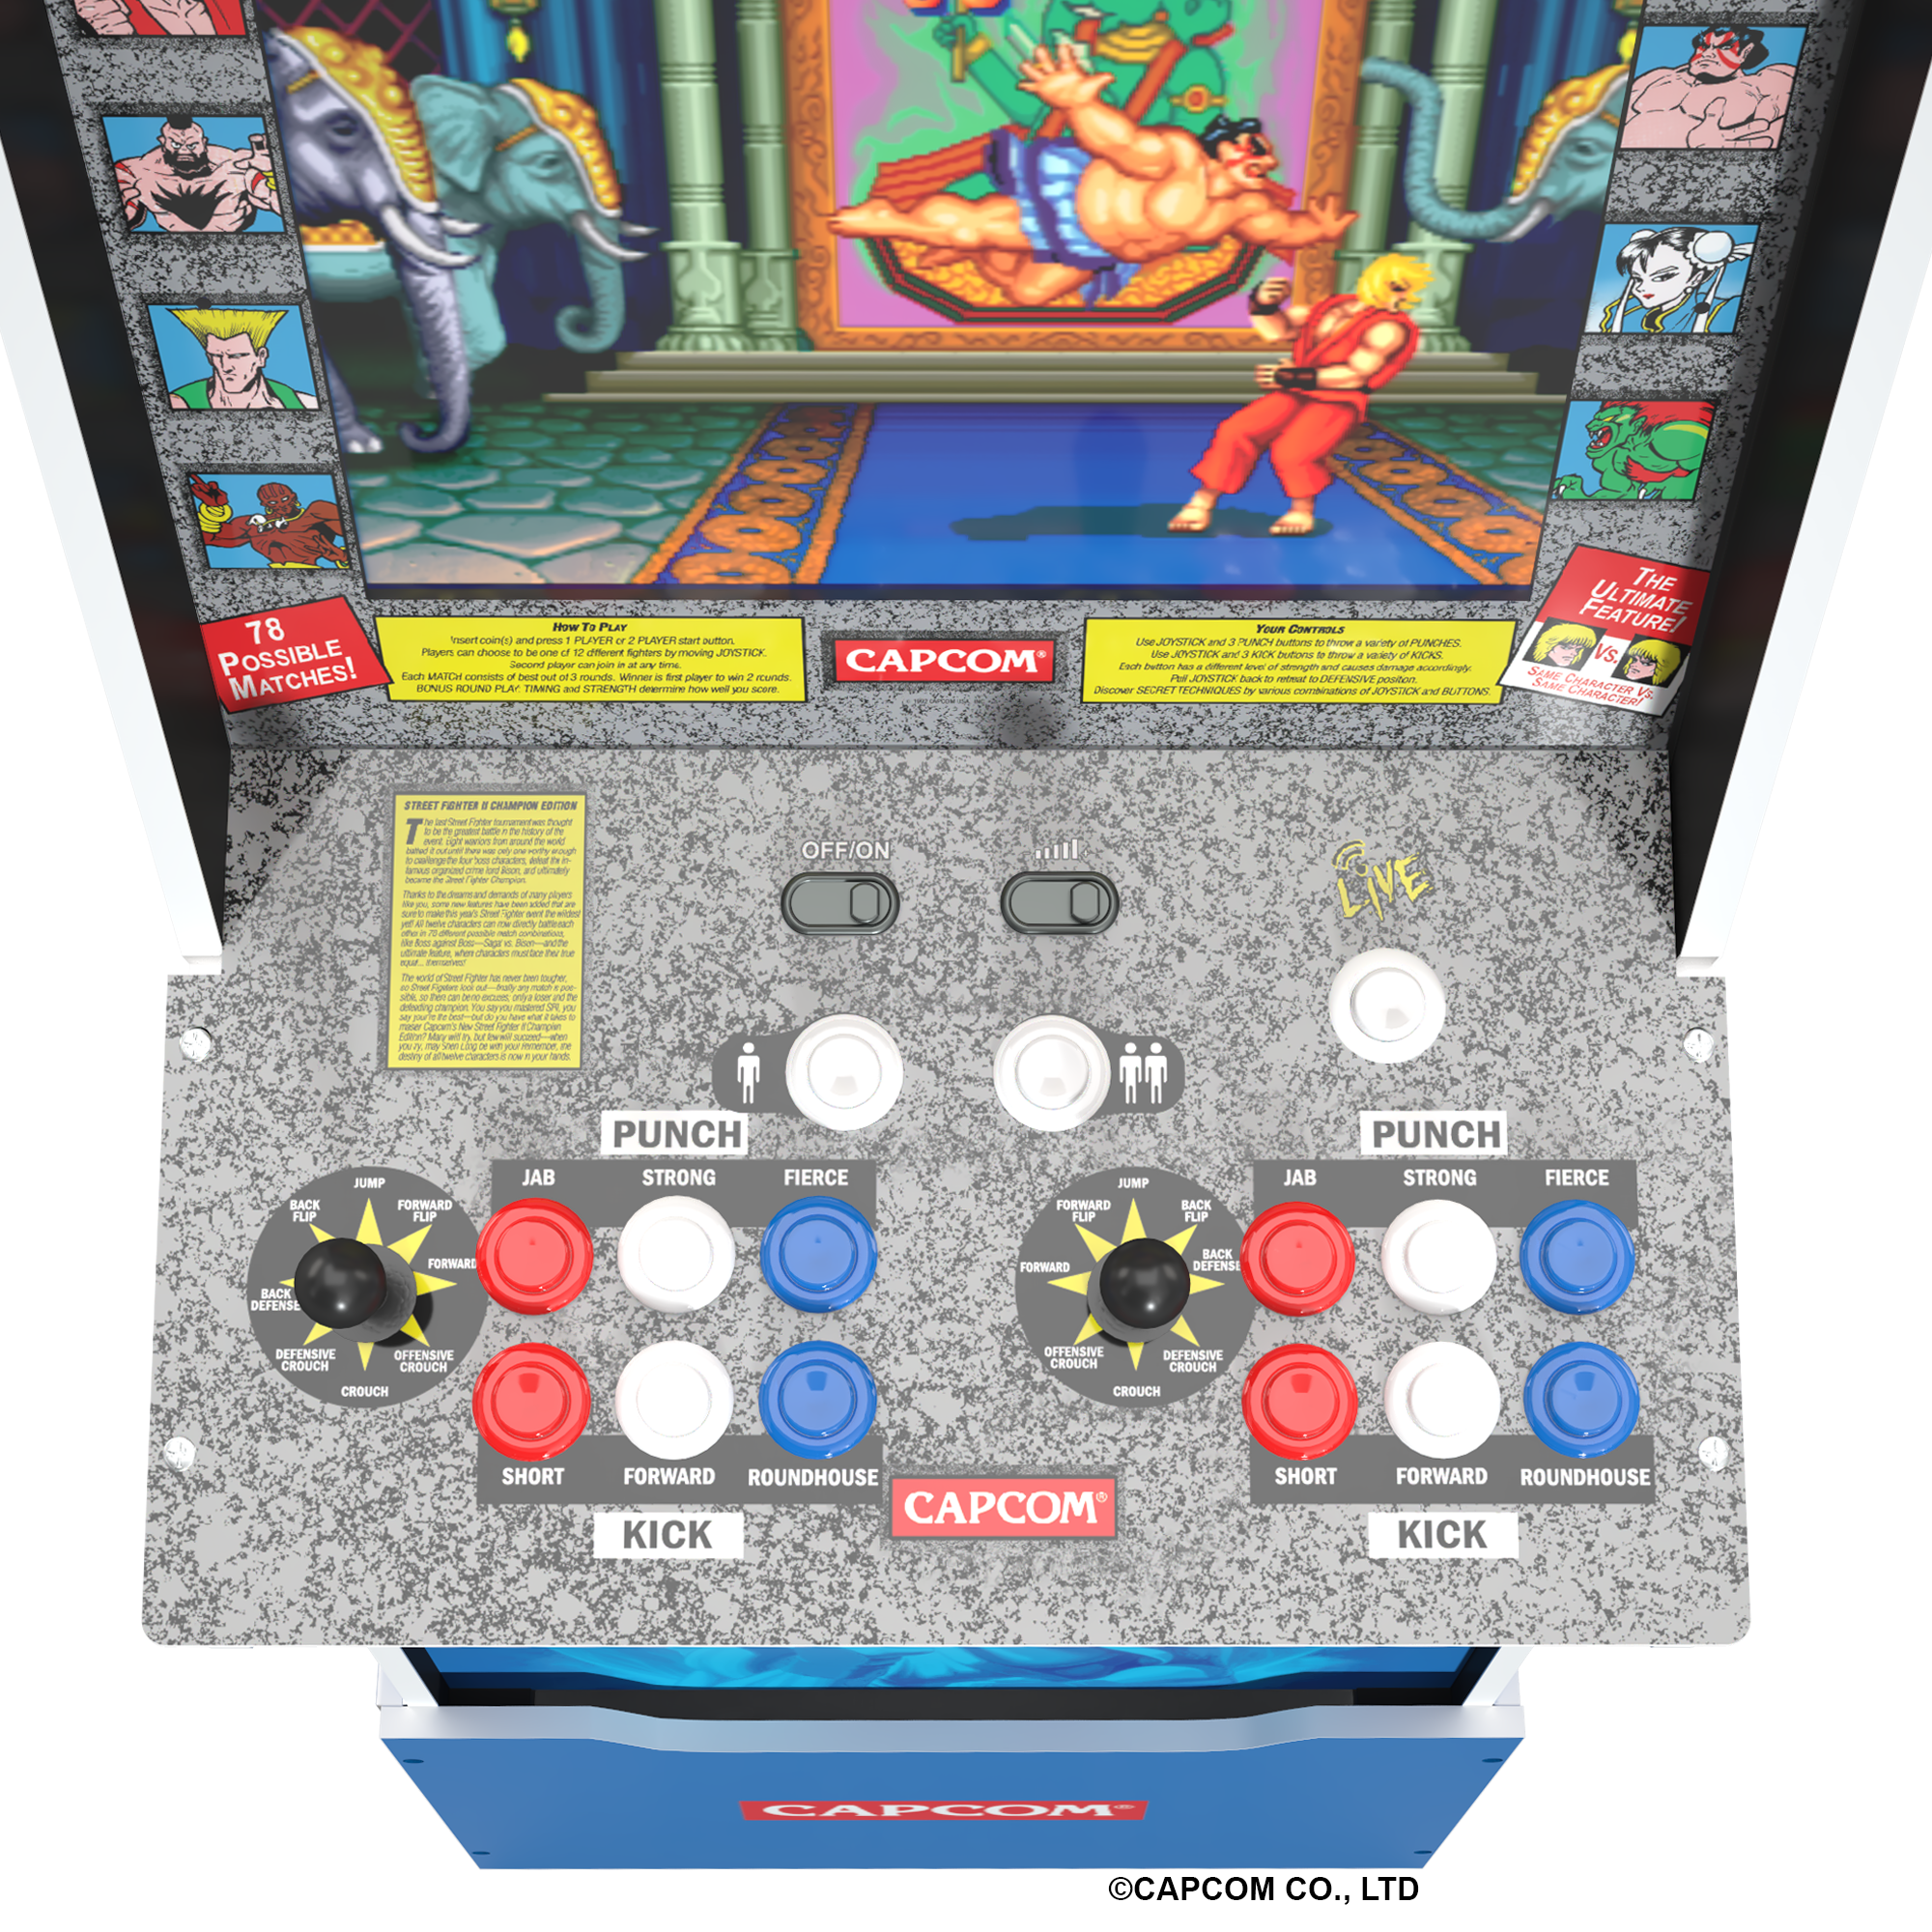 All the retro fighting action you need in one machine.